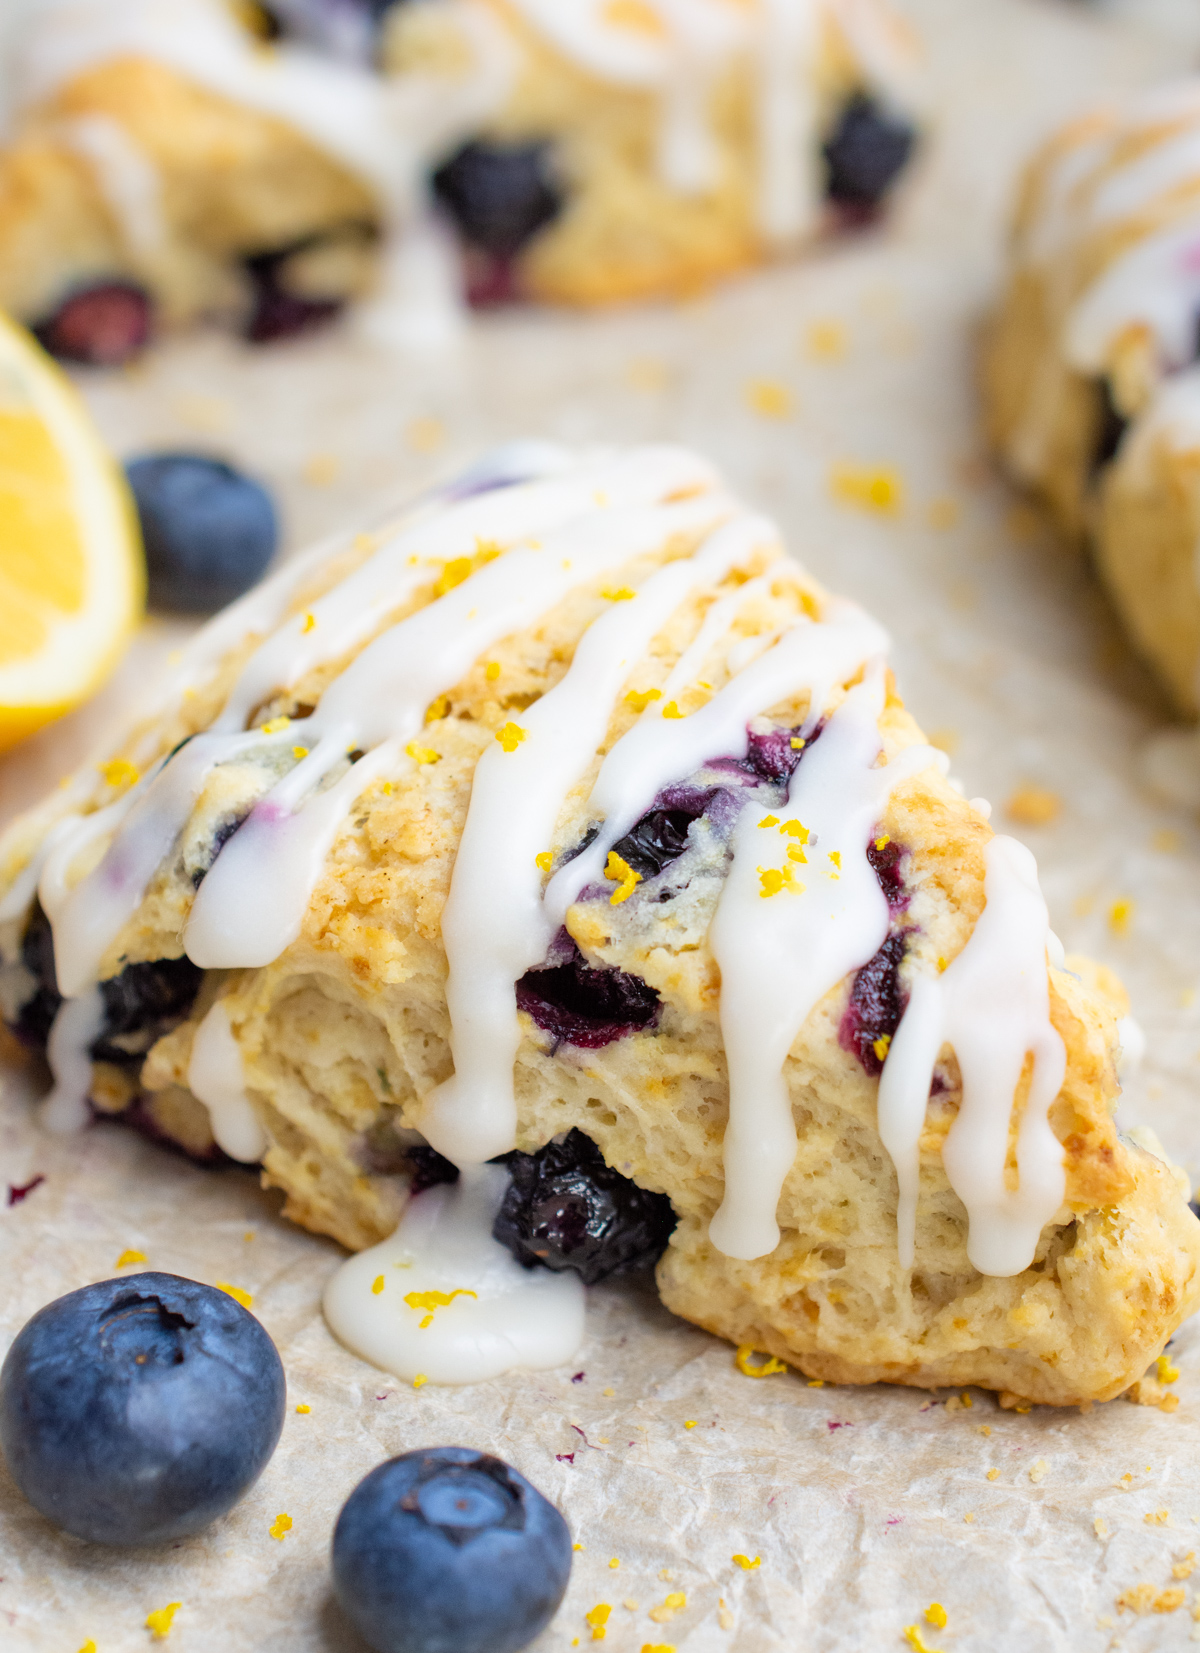 Vegan blueberry scone surrounded with lemon zest and blueberries.